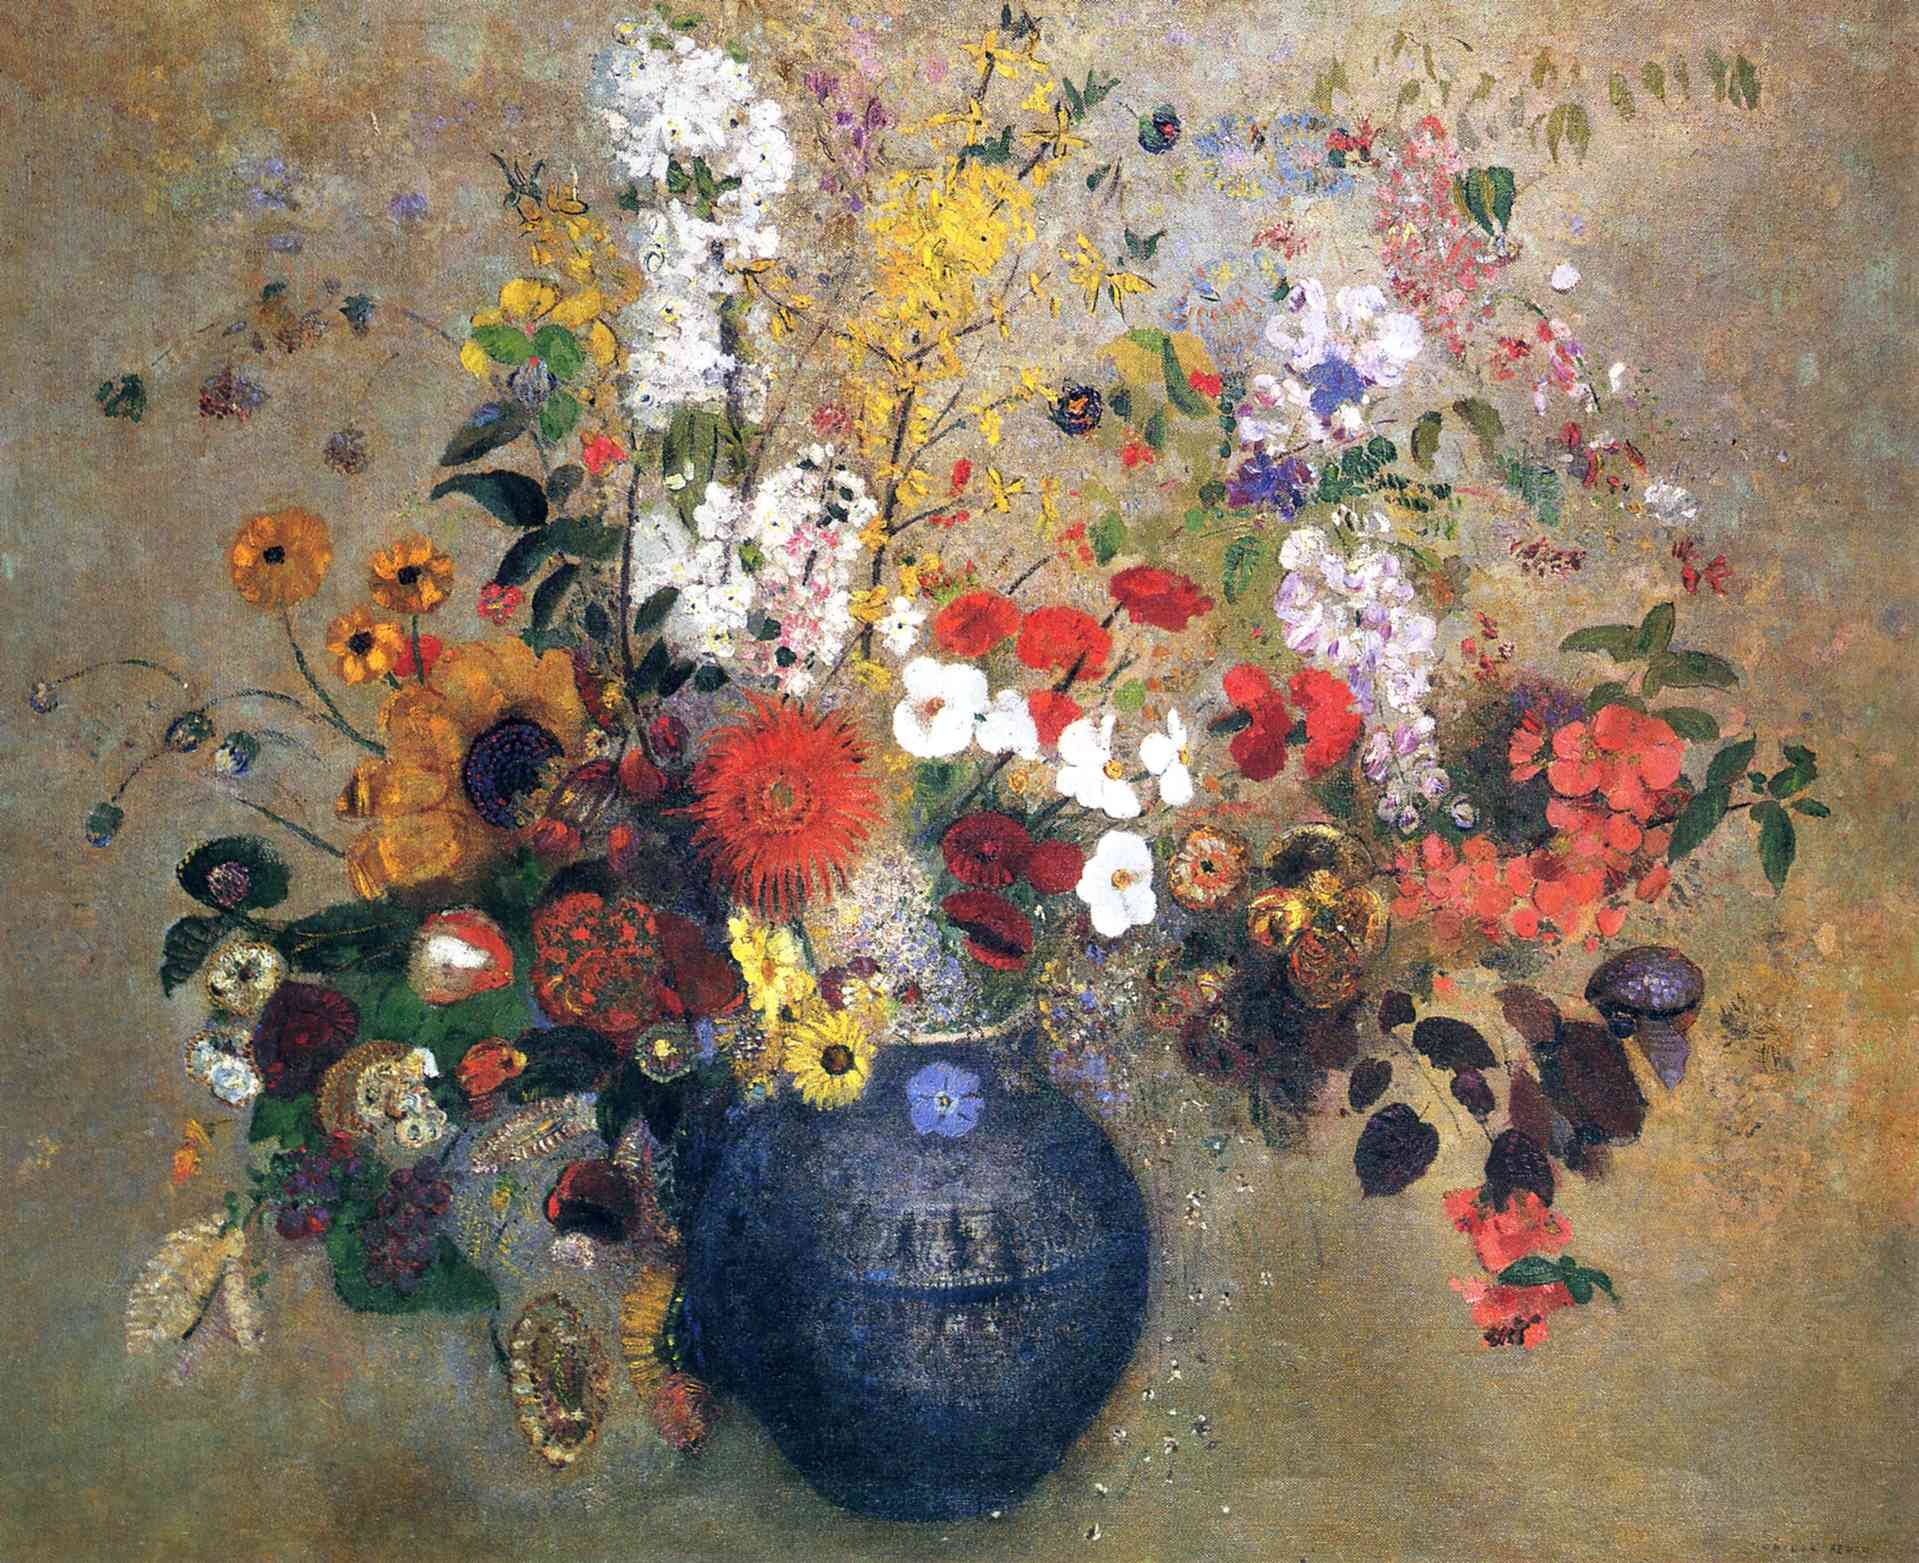 Flowers in a Beaded Blue Vase by Odilon Redon, 1909, lighter version